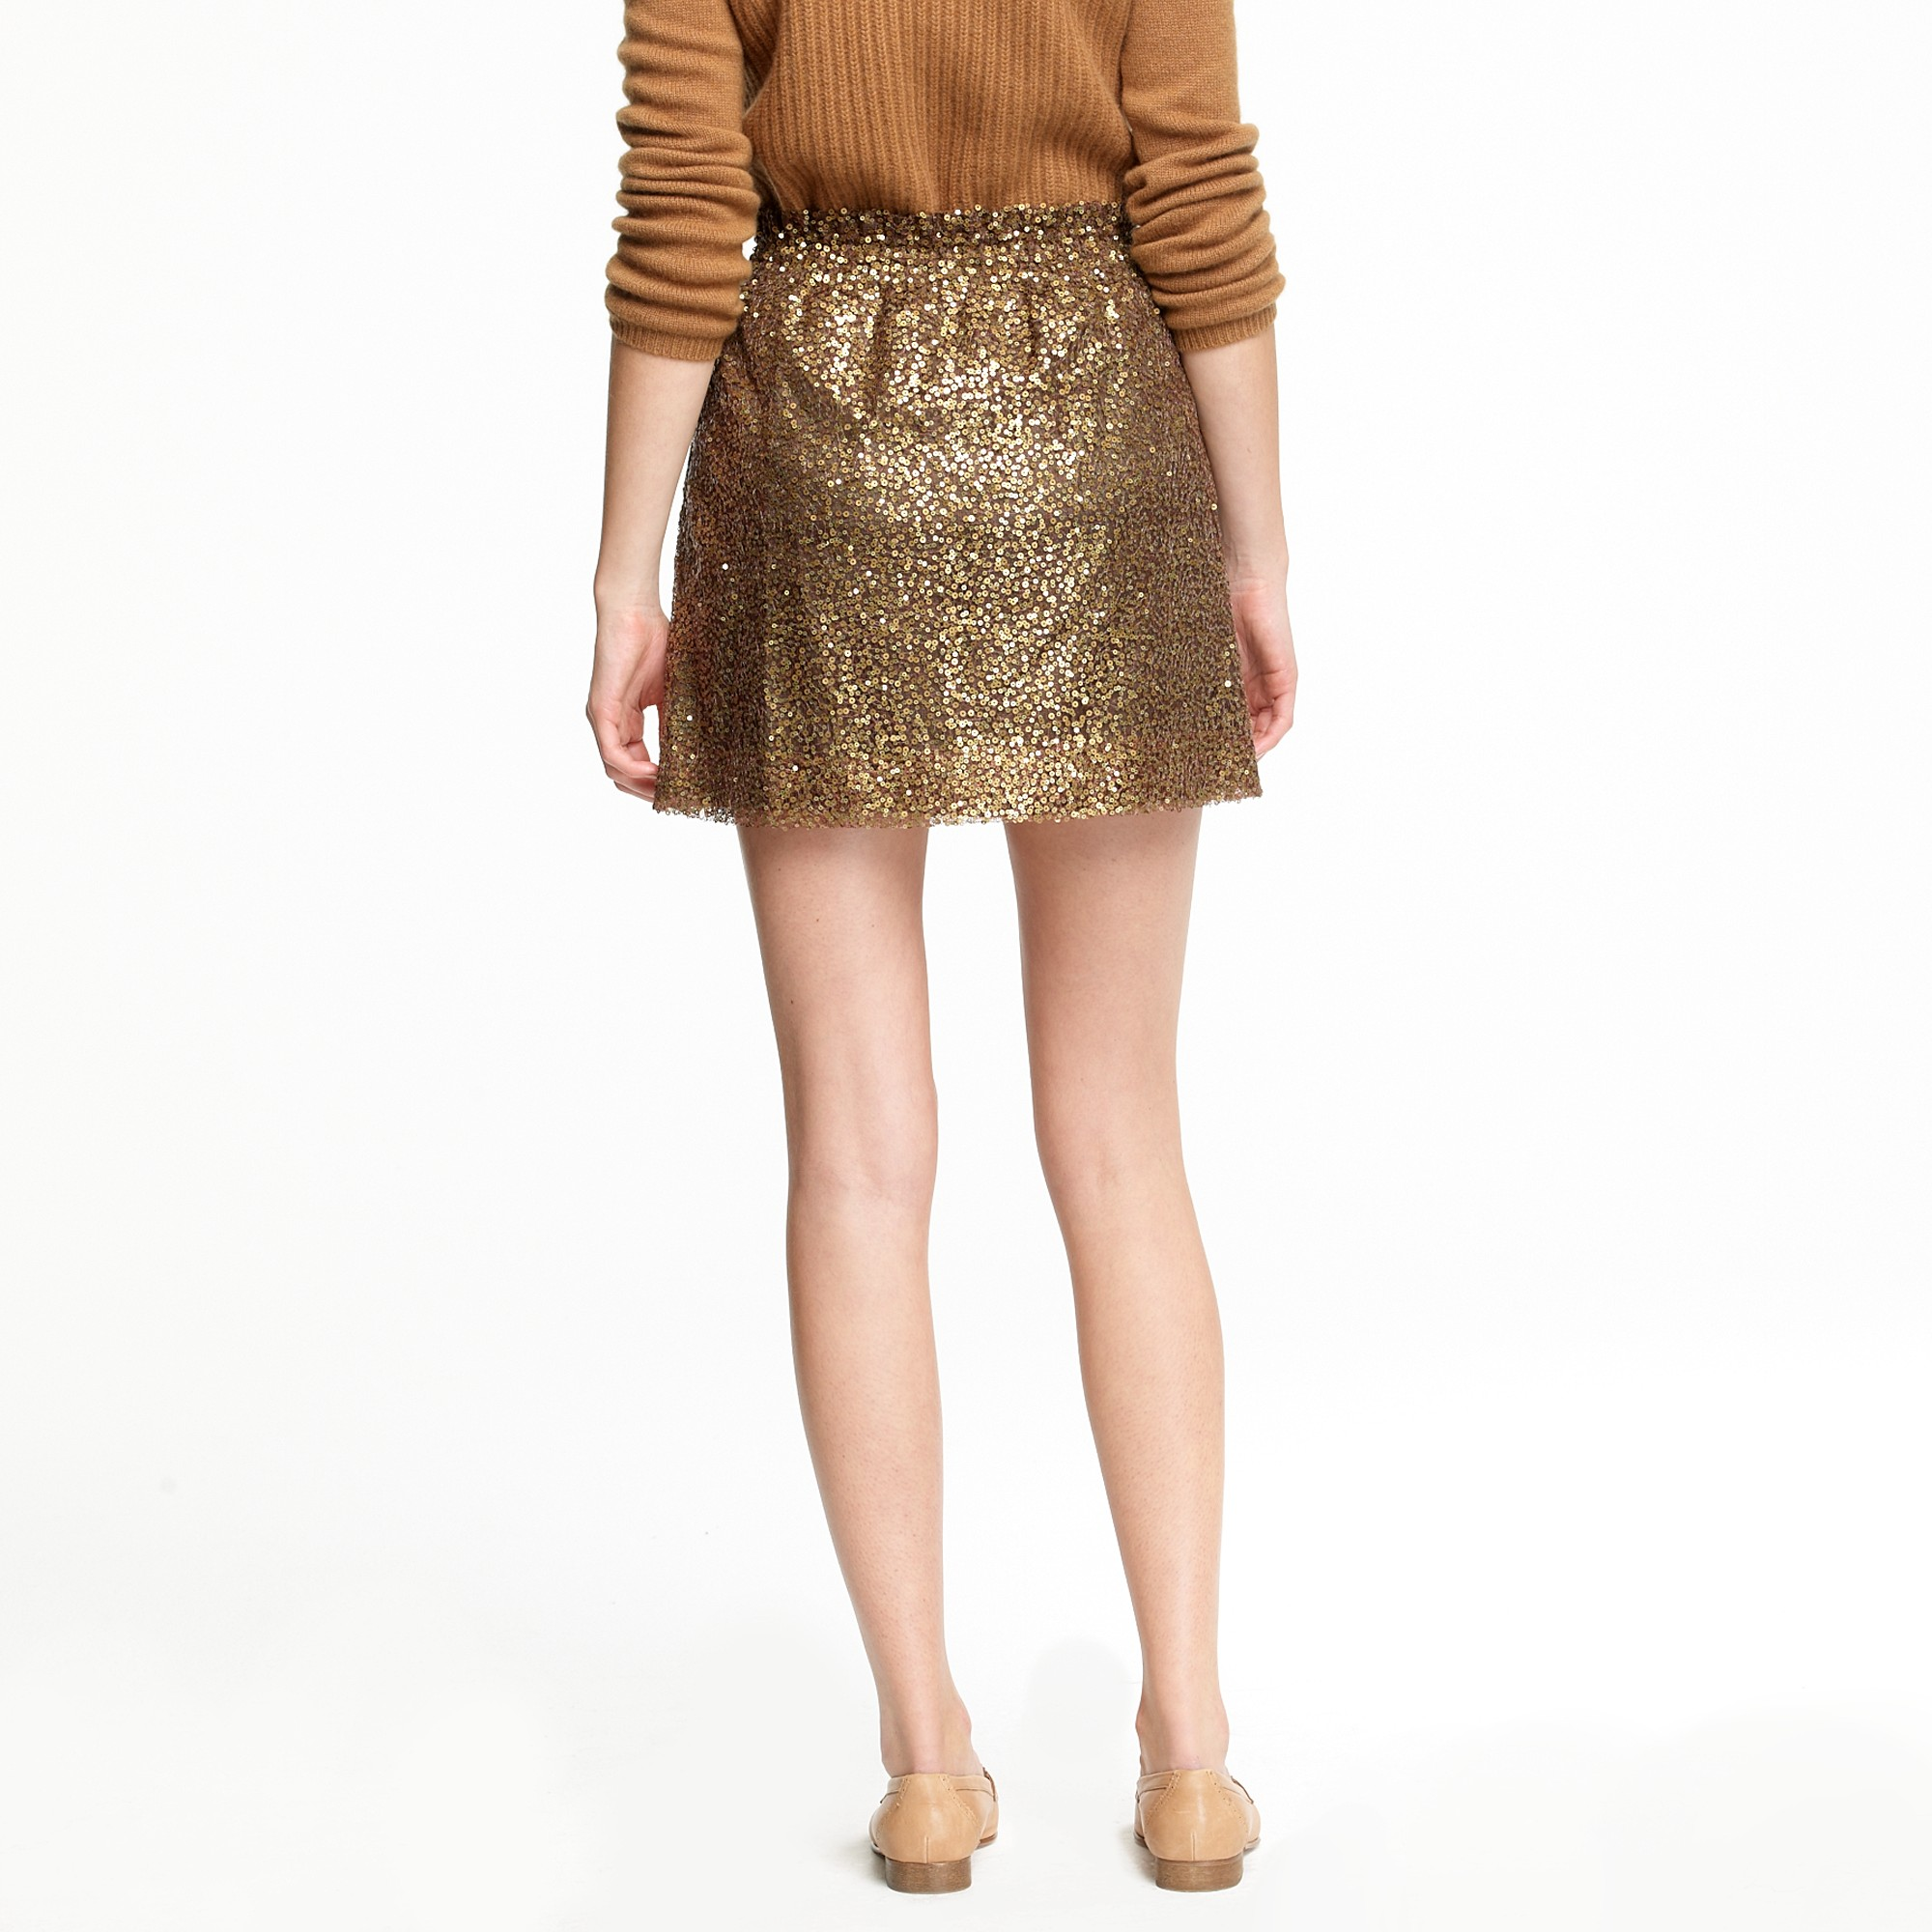 b82b327b10 J.Crew Sequin Mesh Bell Skirt in Metallic - Lyst